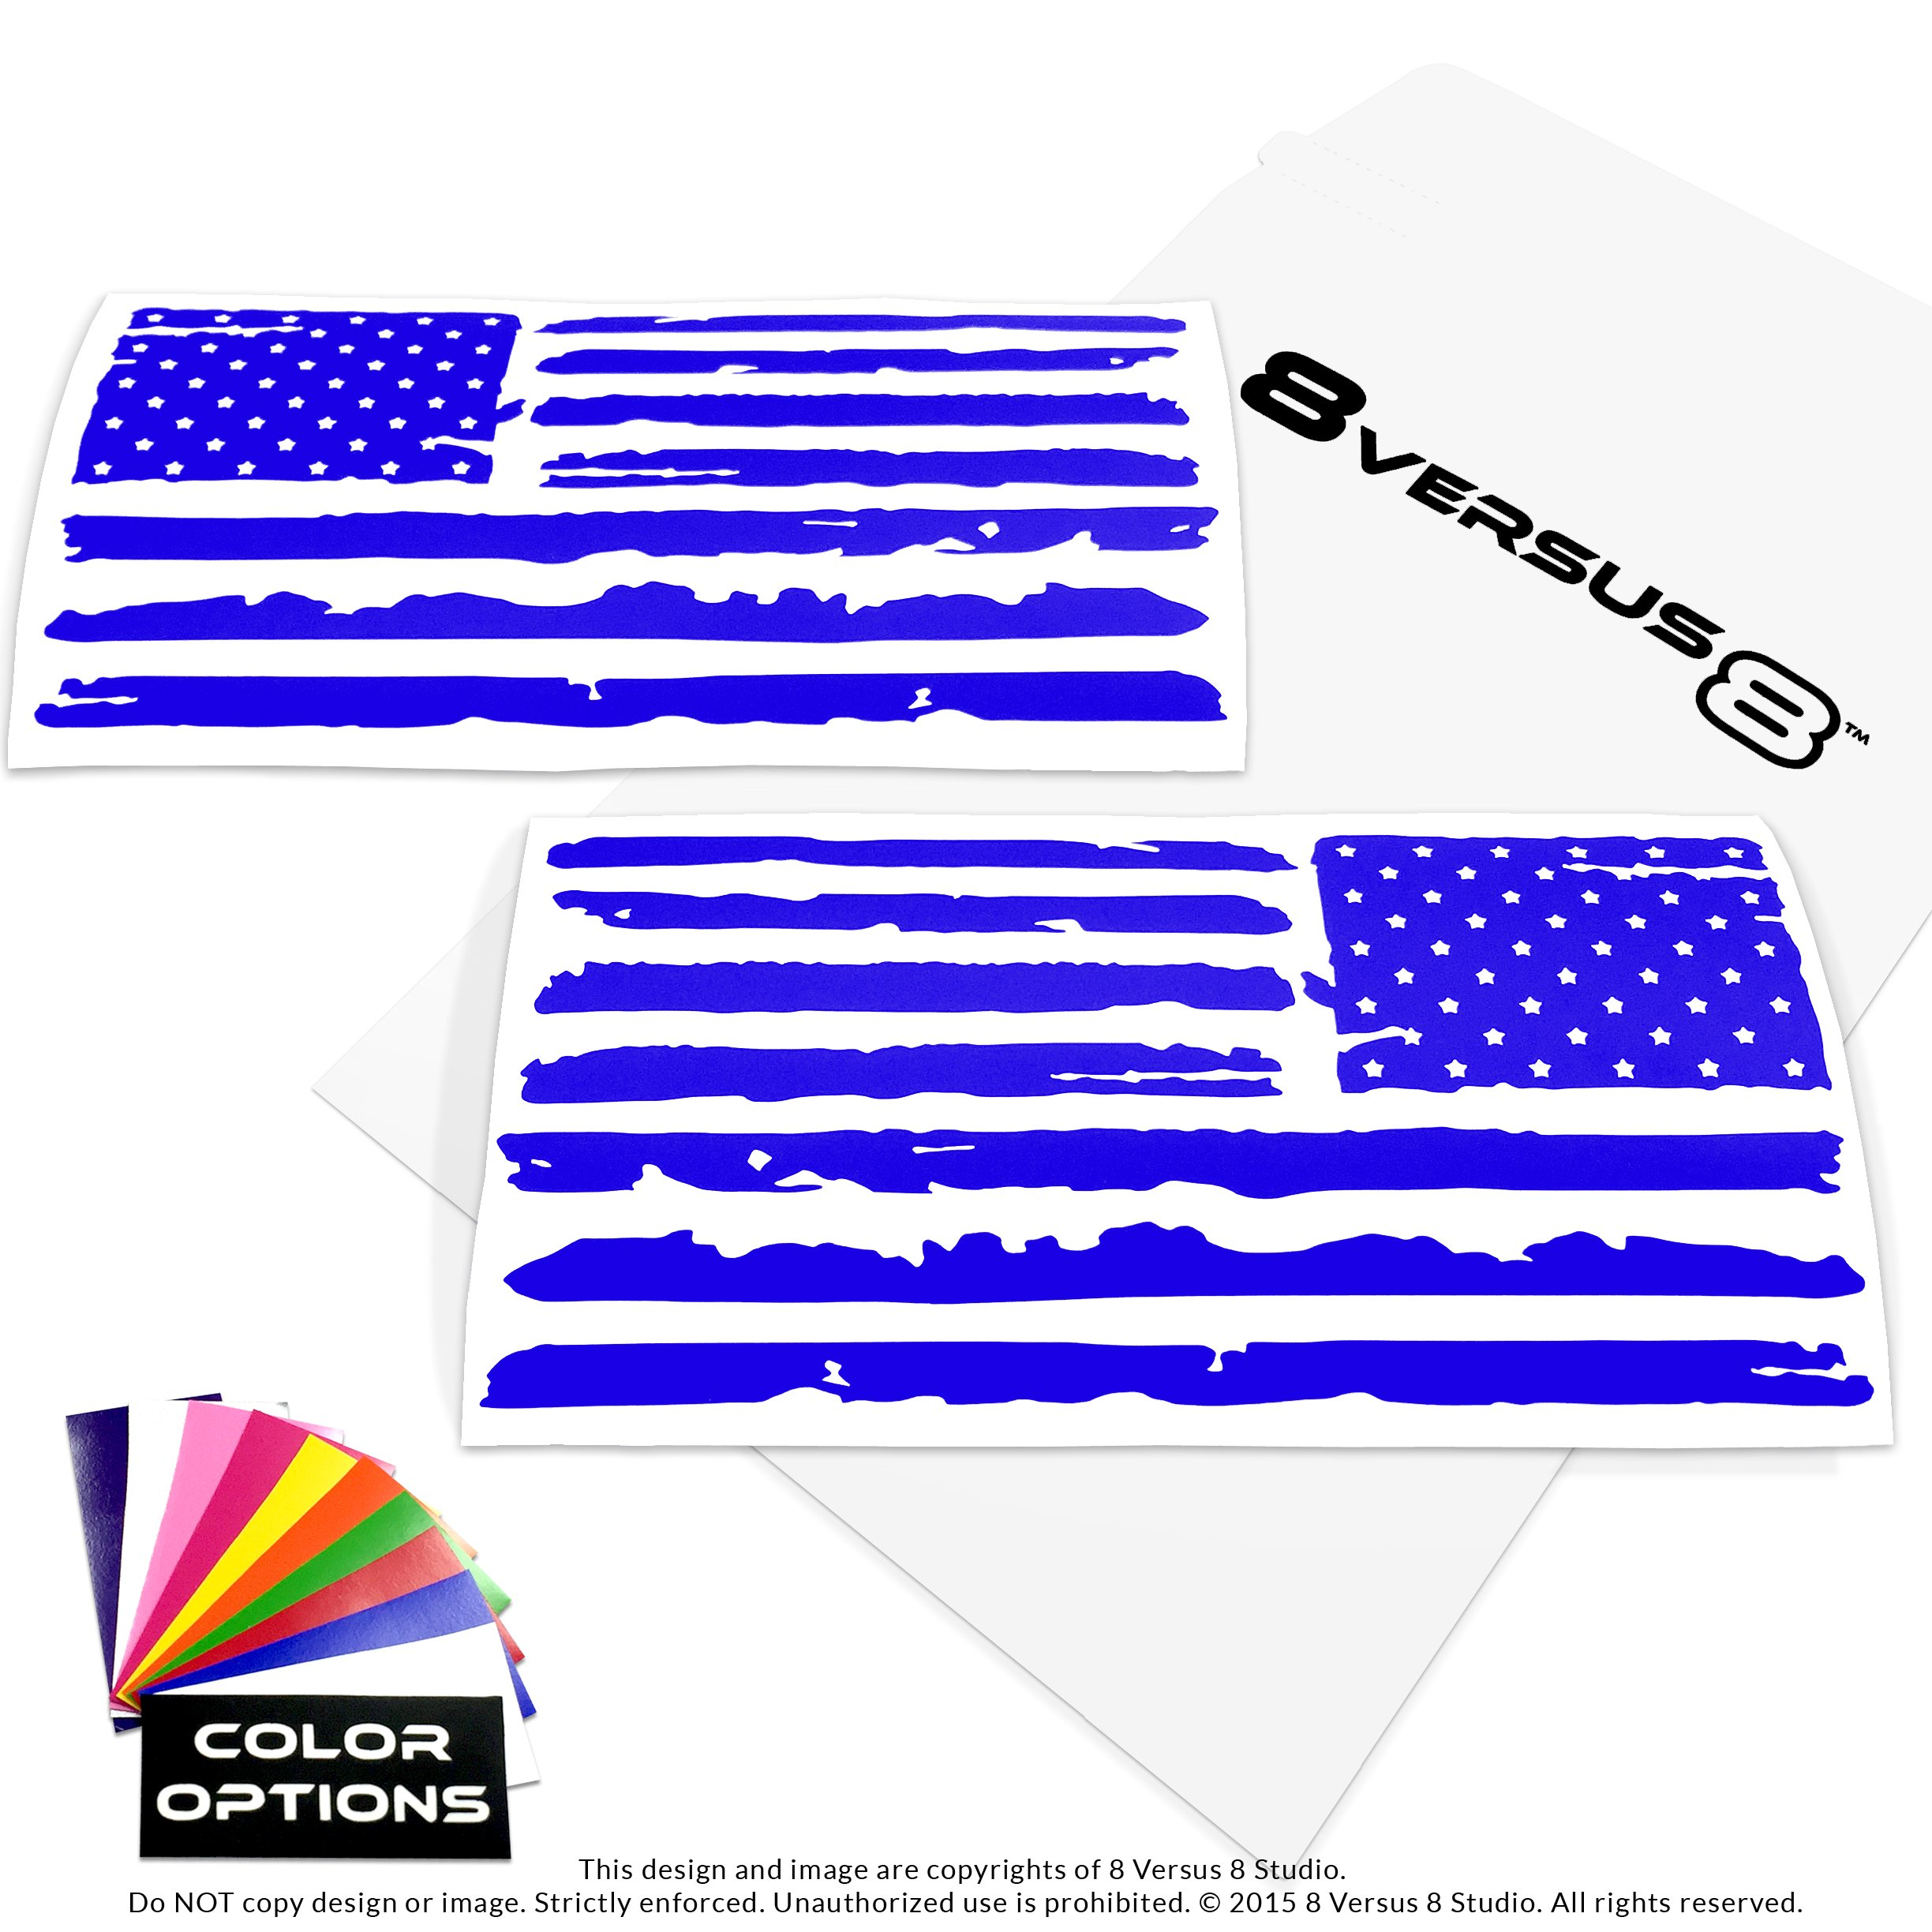 Distressed Flag Decal Sticker - Quantity: 2 - Indoors or Outdoors - Cars, Laptops, Walls, Windows, etc. (6.5'' wide x 3.2'' tall, Blue)